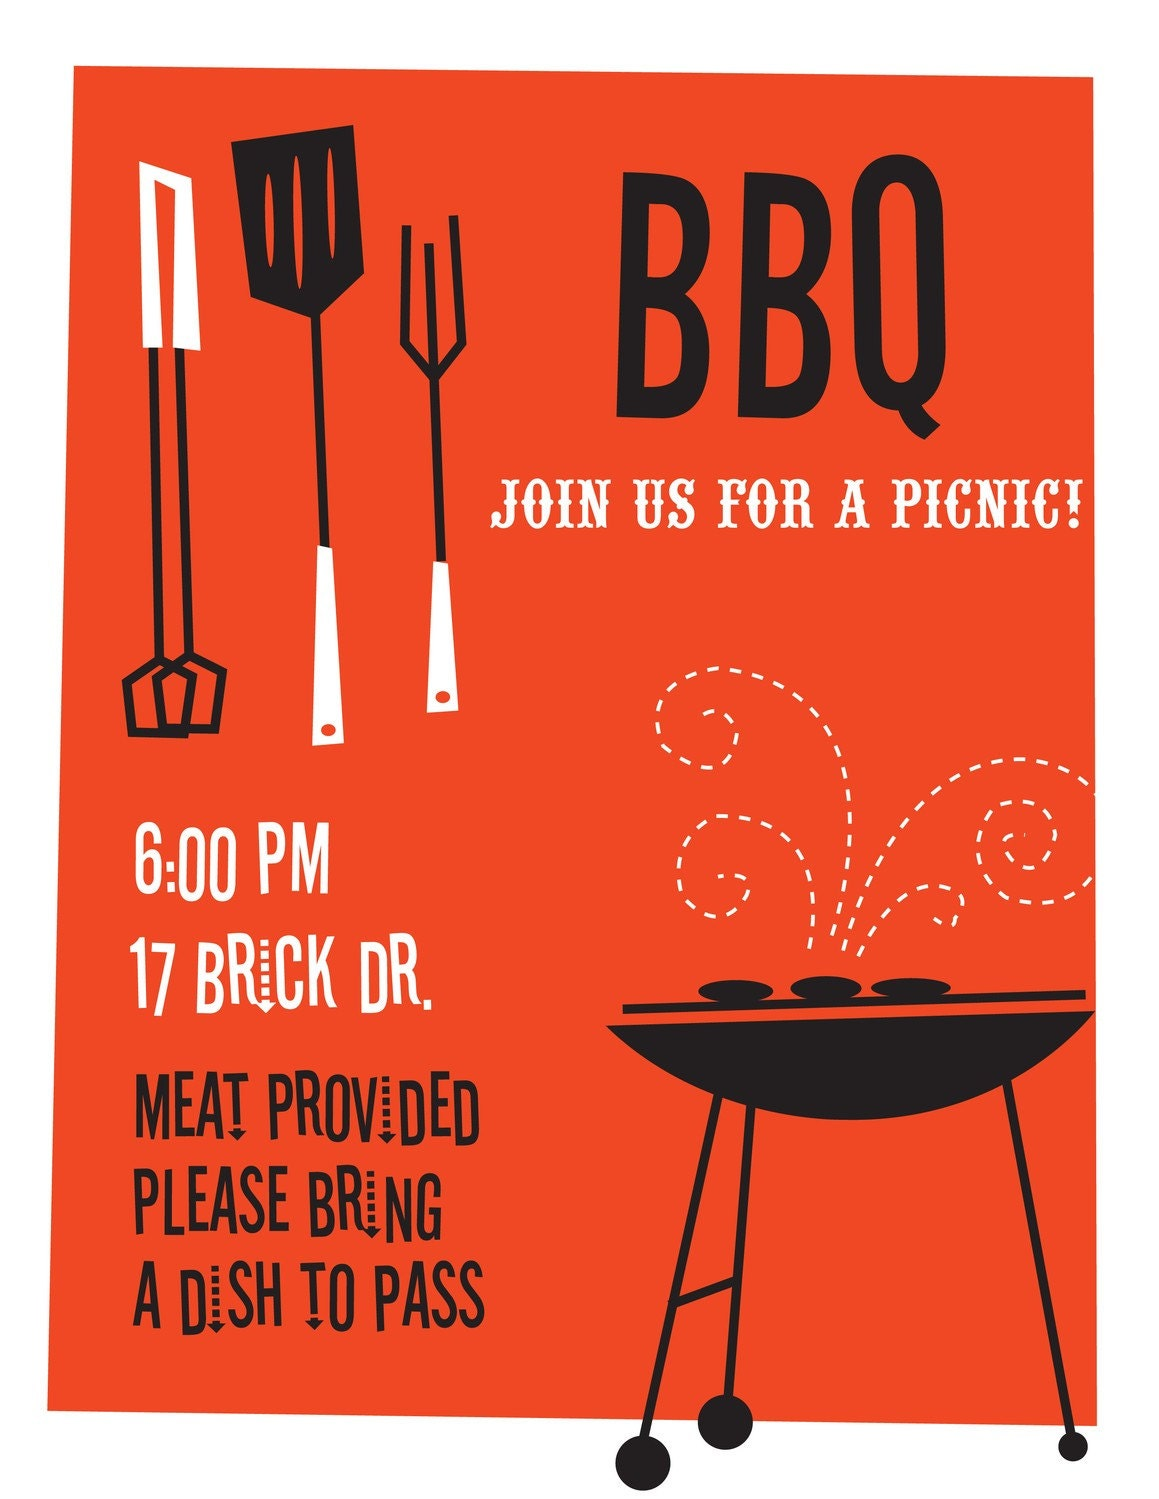 BBQ Picnic Cookout Custom Printable Party Invitation - SBVintageAndDesign